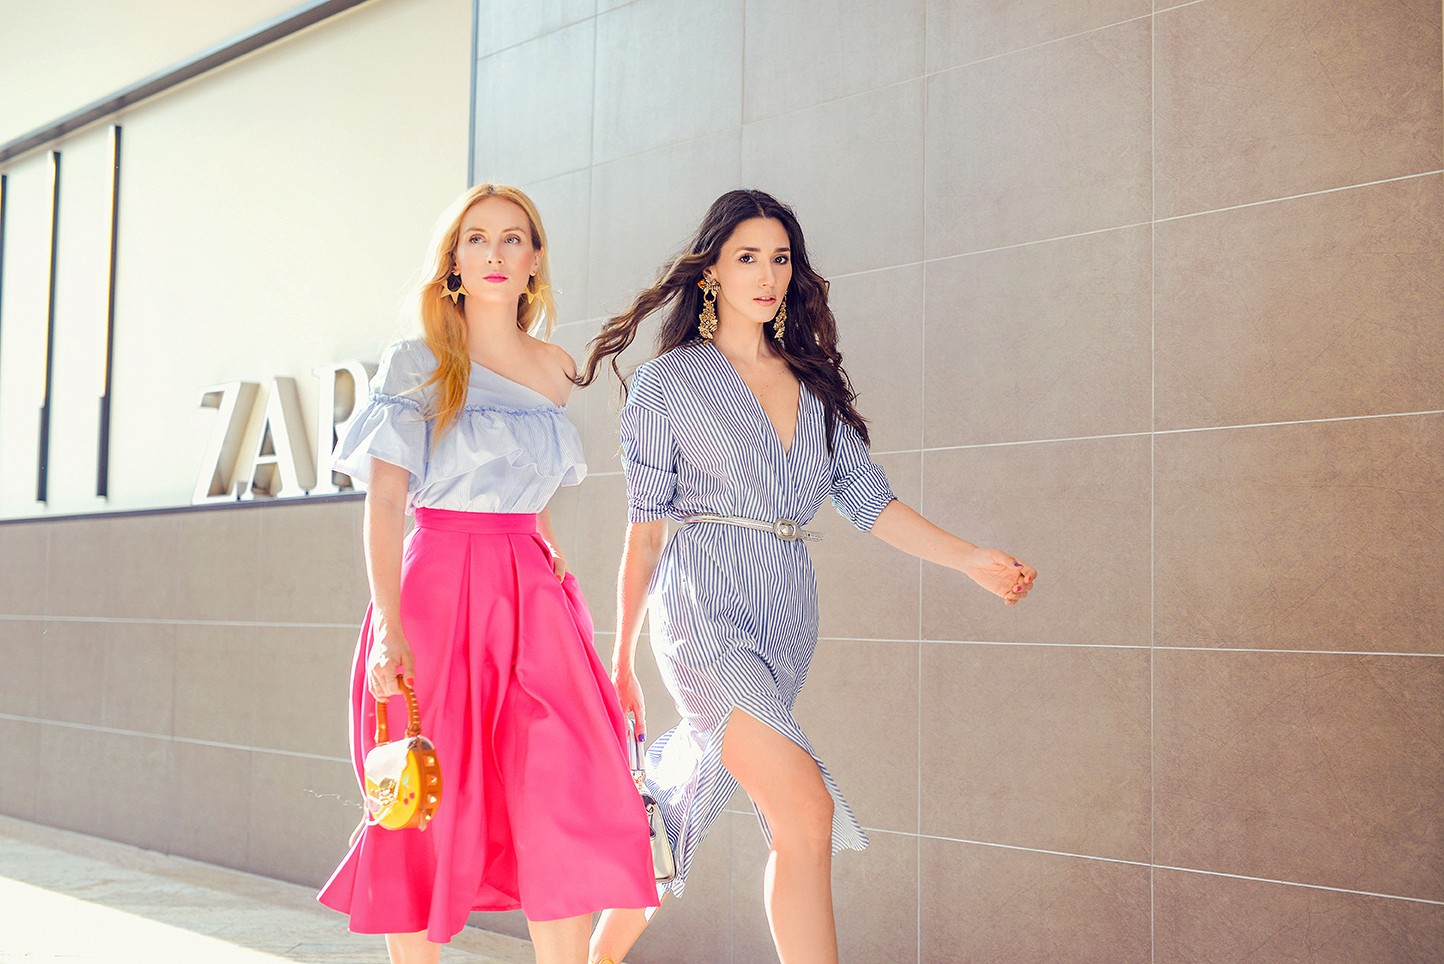 1Baneasa_Shopping_City_Summer_Outfits_Fabulous_Muses_Diana_enciu_alina_tanasa